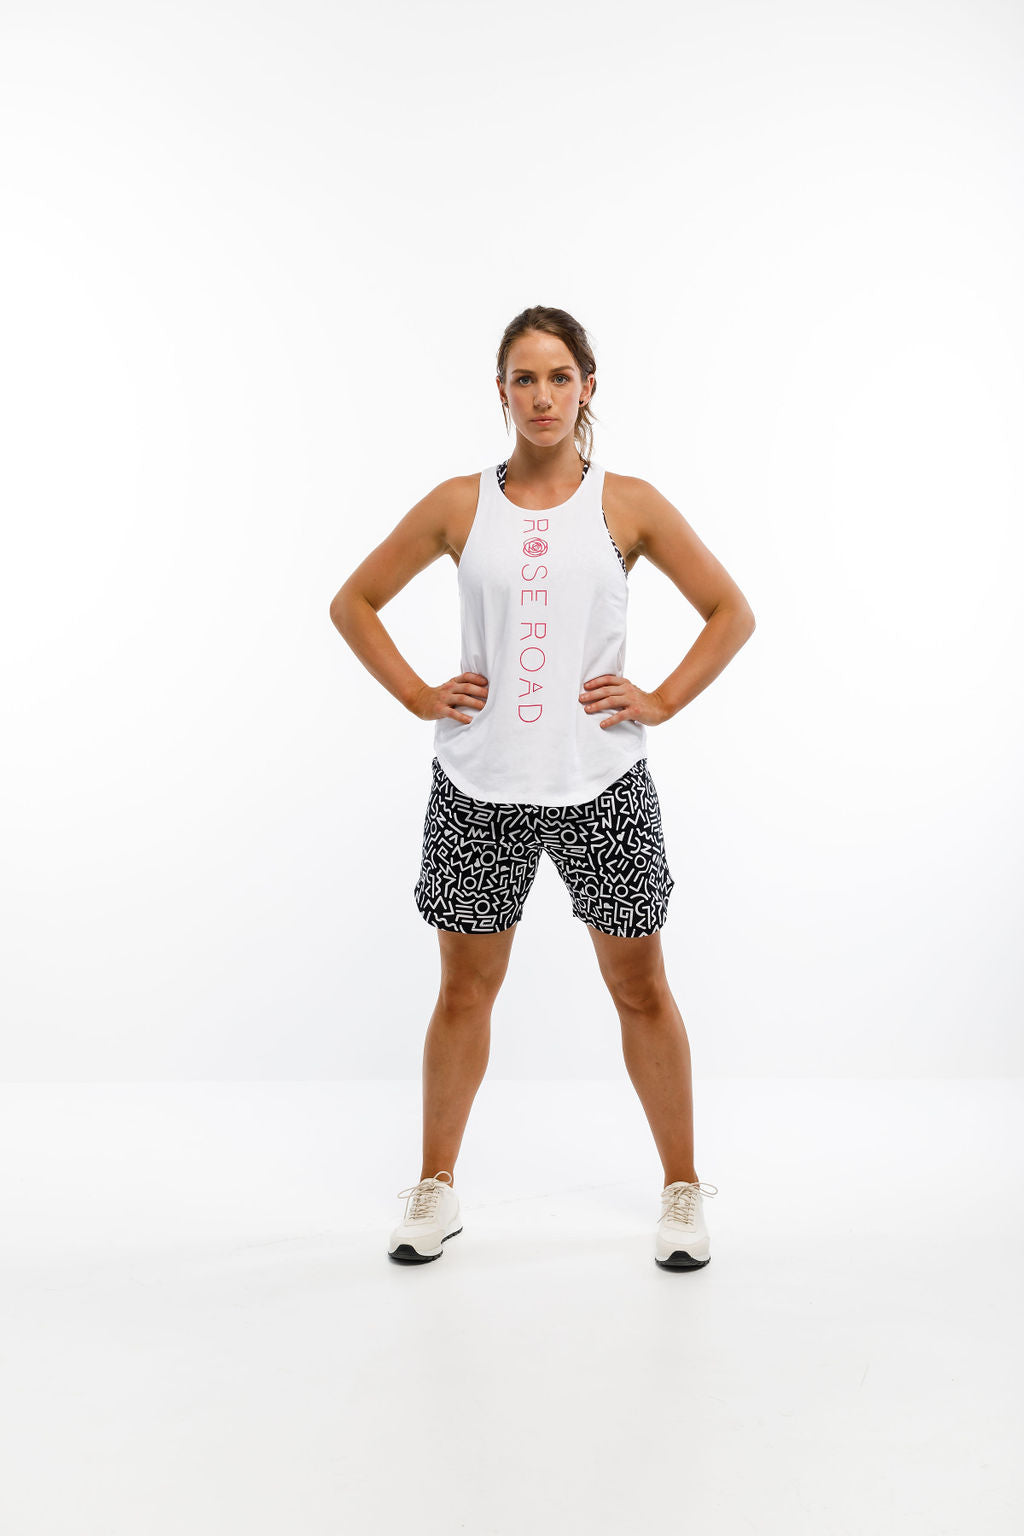 RACERBACK SINGLET - White with Pink Vertical Logo